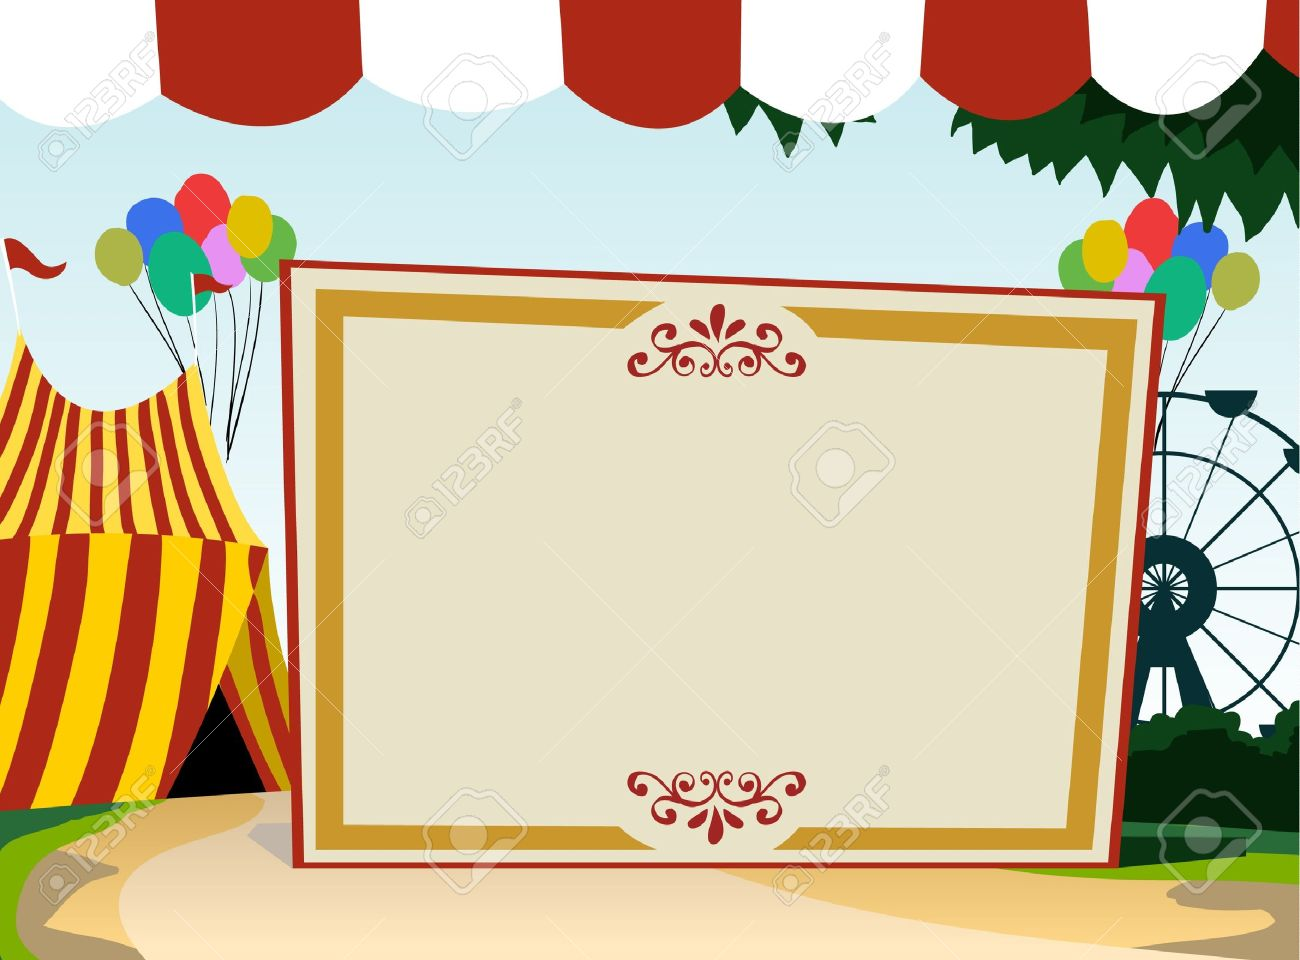 Image Of Blank Board With Carnival Theme